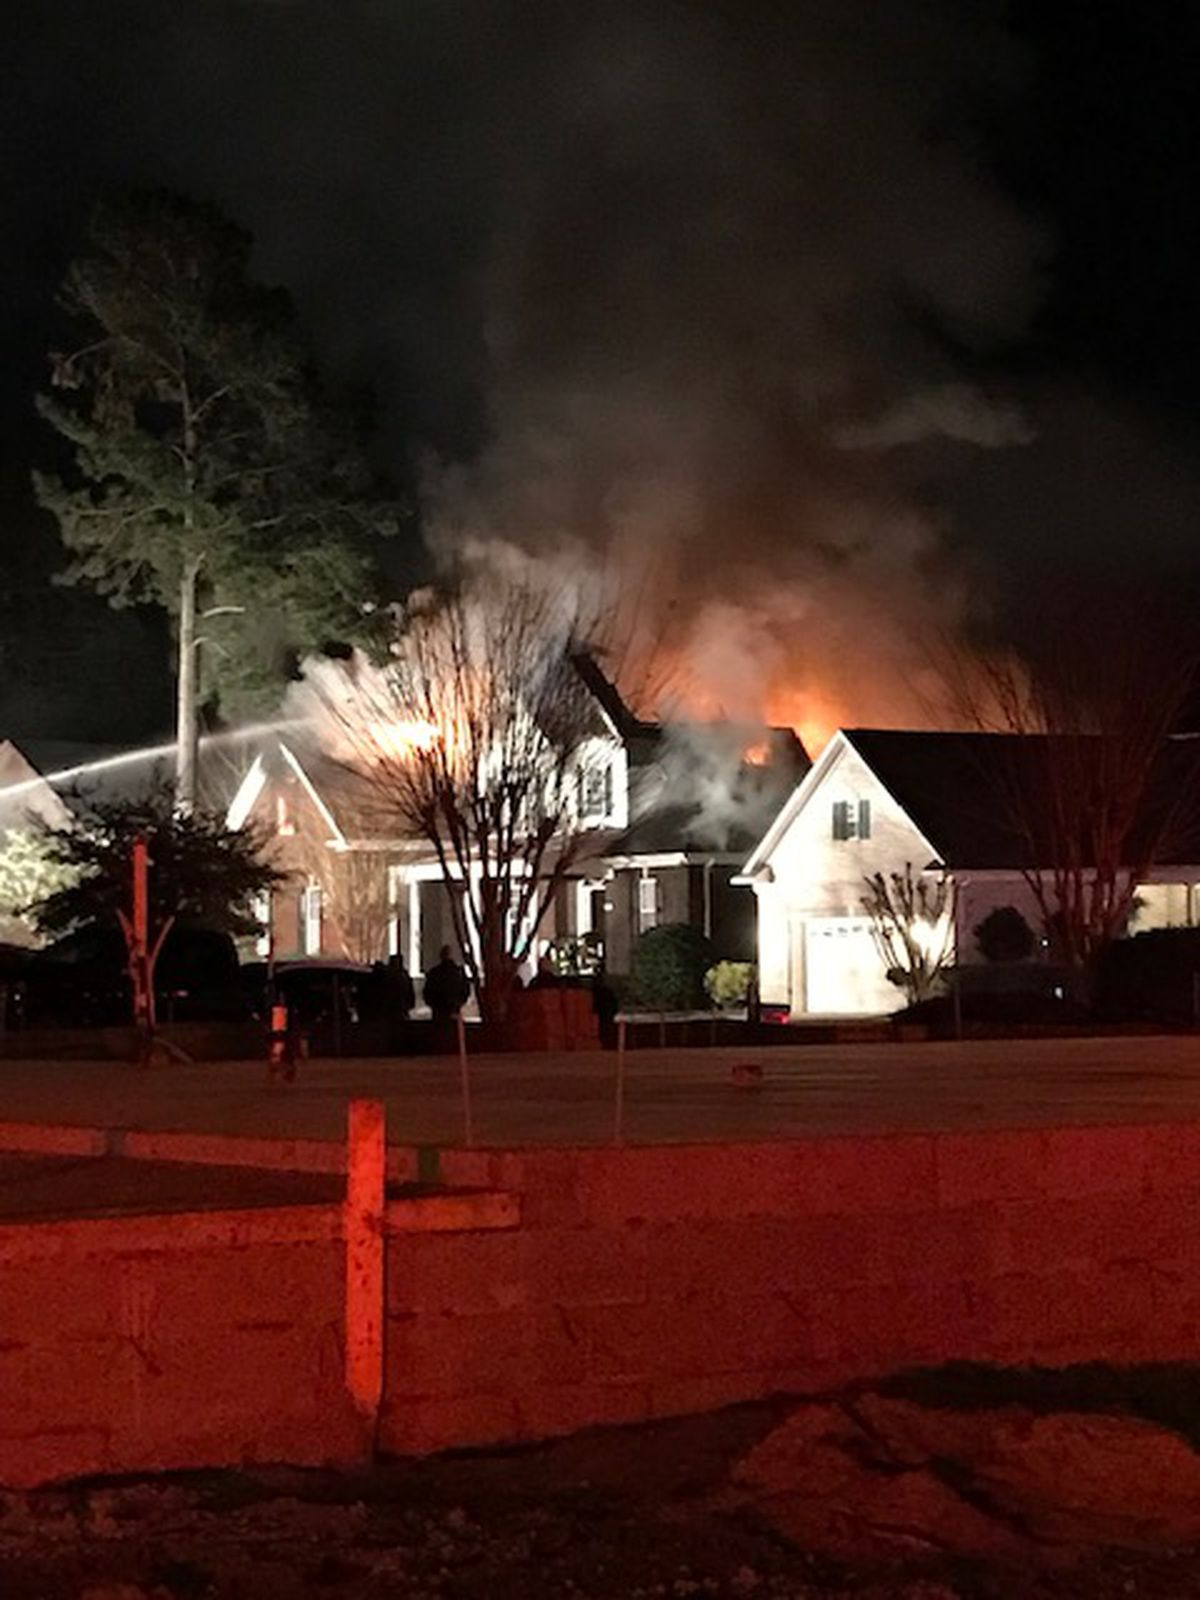 family escapes leland house fire with no injures  but home is a total loss